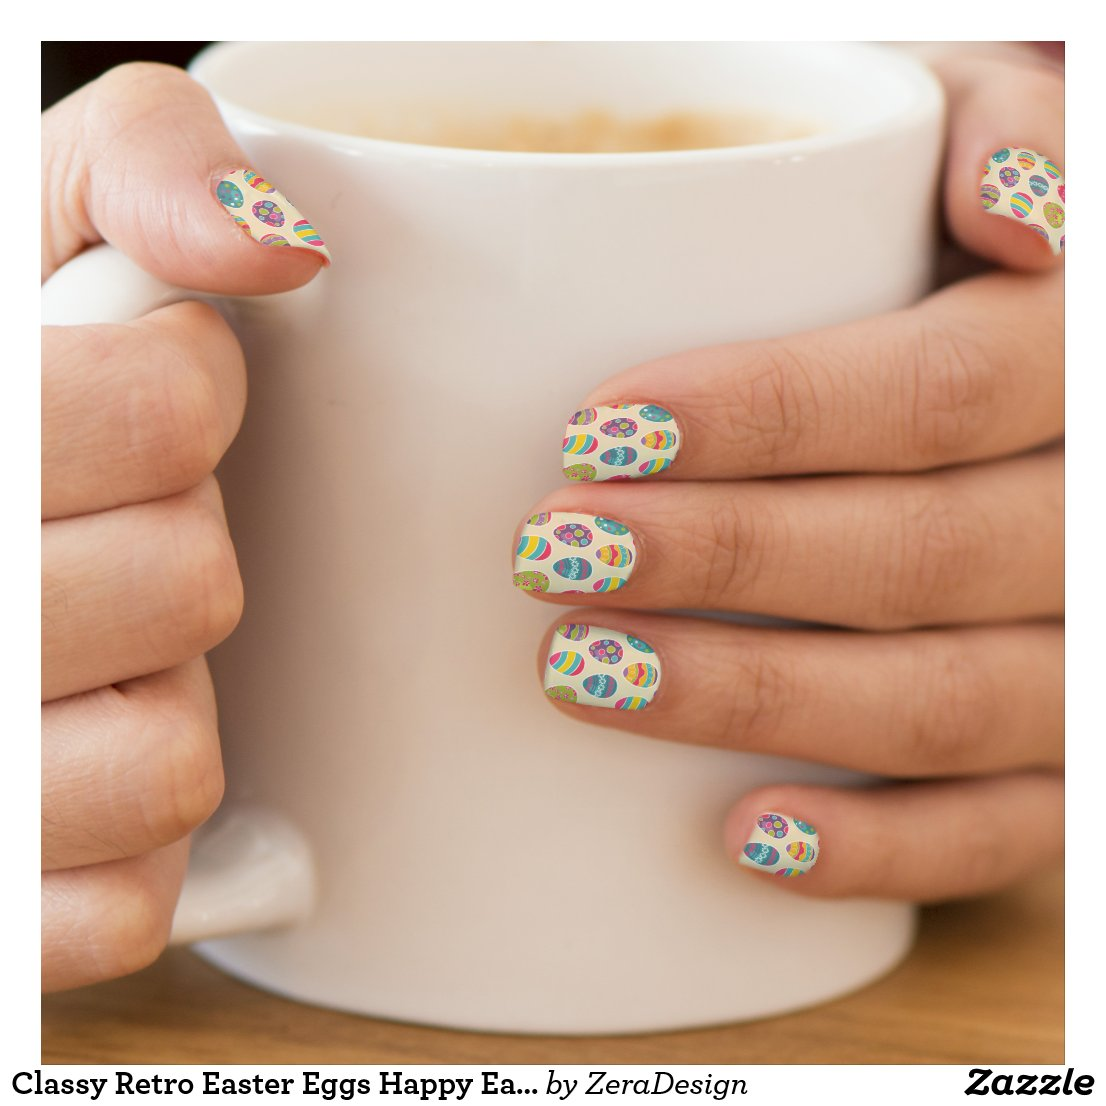 Classy Retro Easter Eggs Happy Easter Day Minx Nail Art